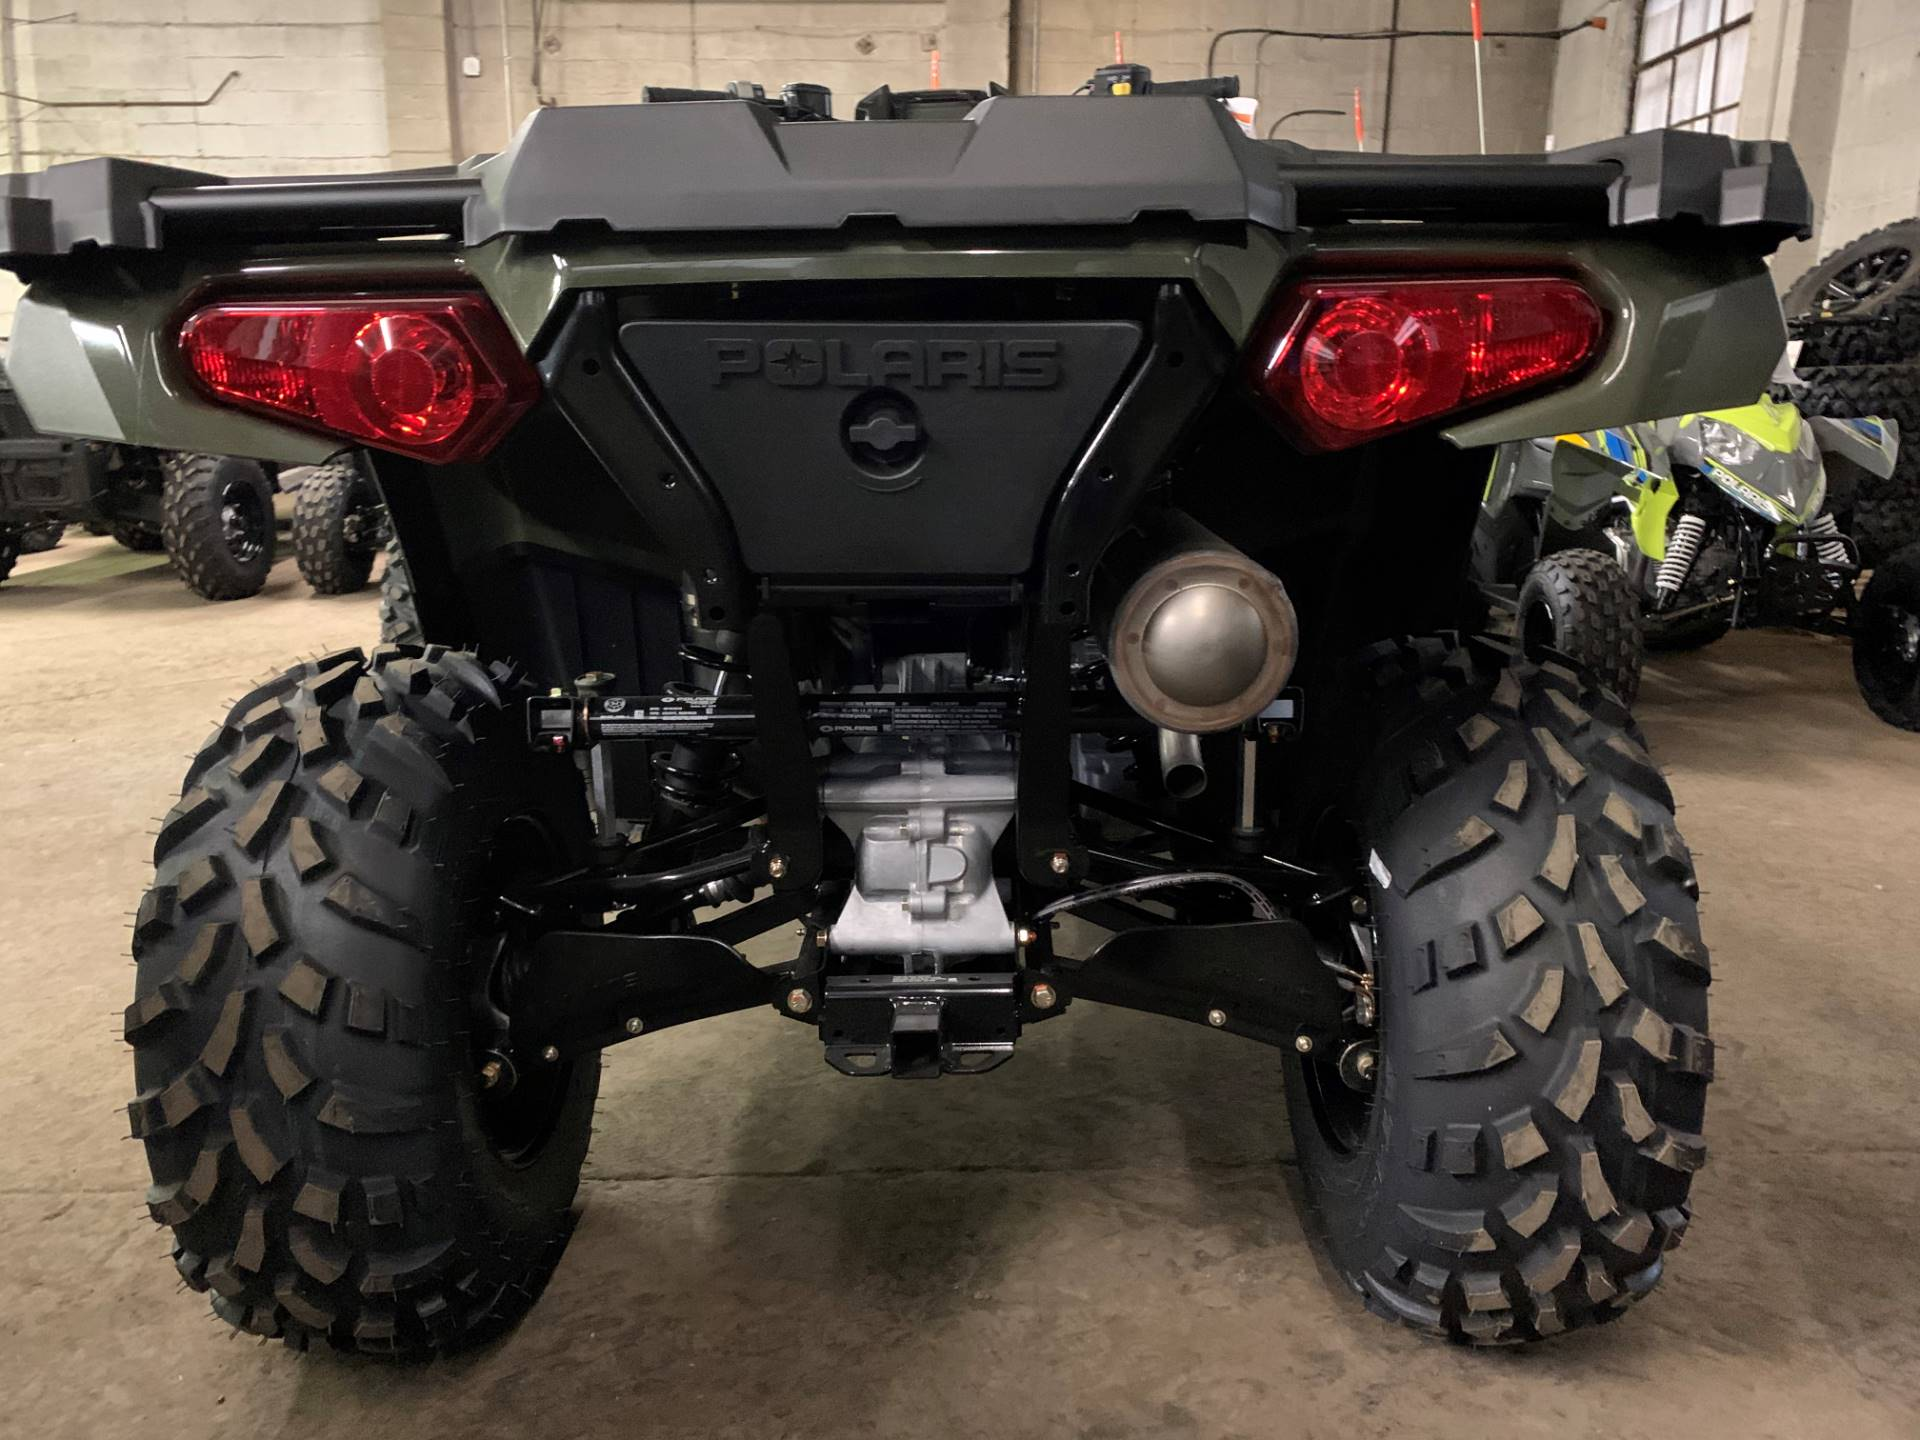 2020 Polaris Sportsman 570 in Chicora, Pennsylvania - Photo 4